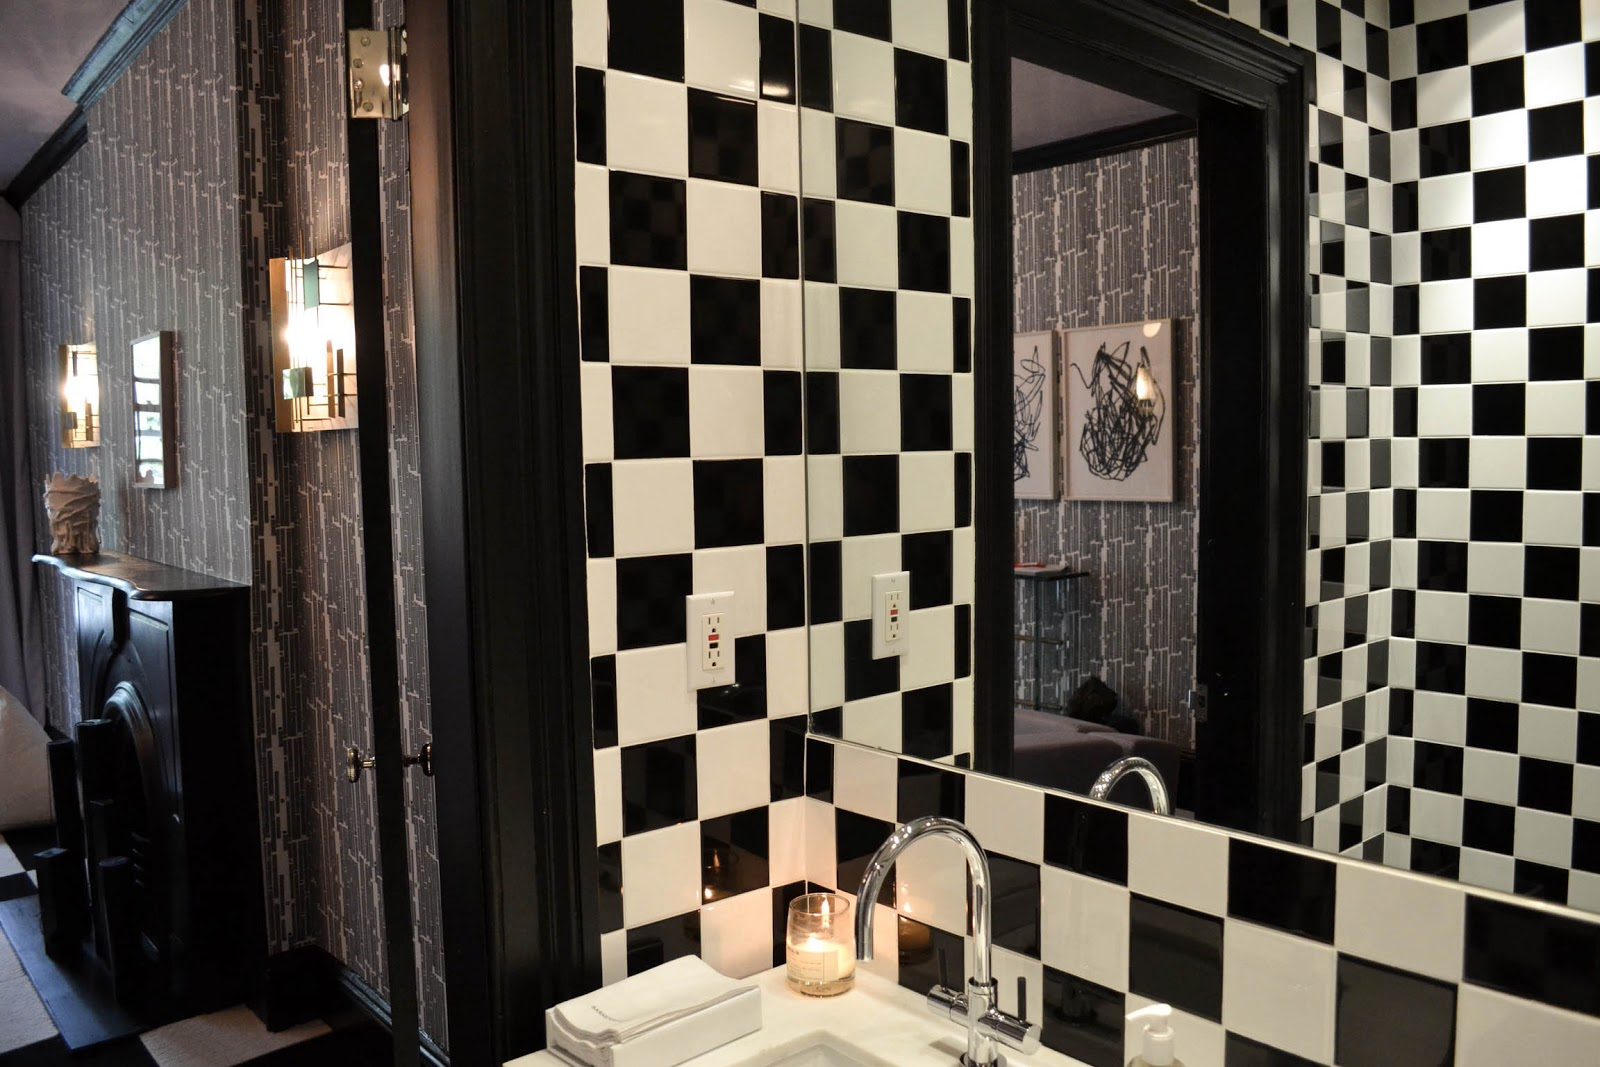 Dress up the entire vanity in a checkered pattern